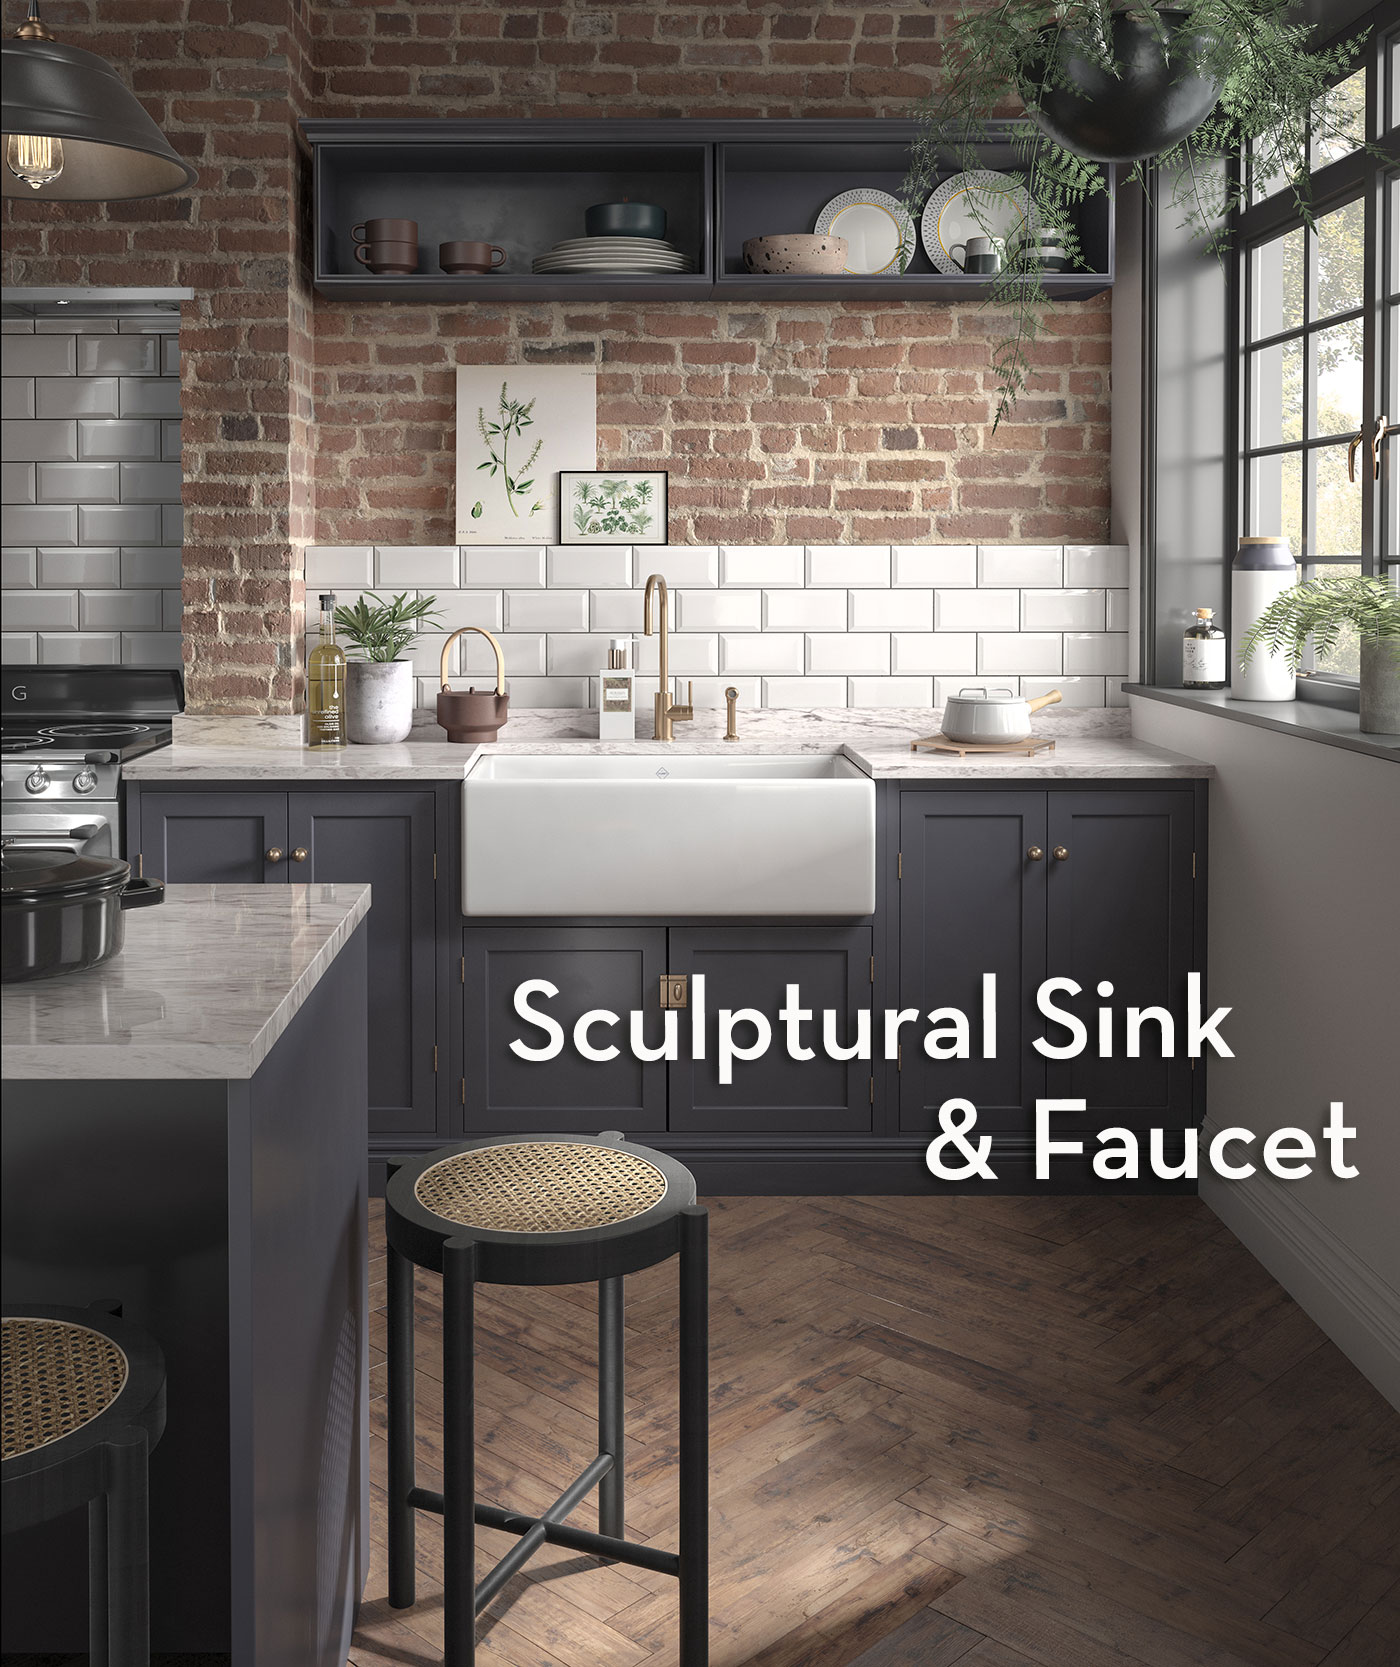 House of Rohl sink and faucet available at Snow and Jones, Inc.